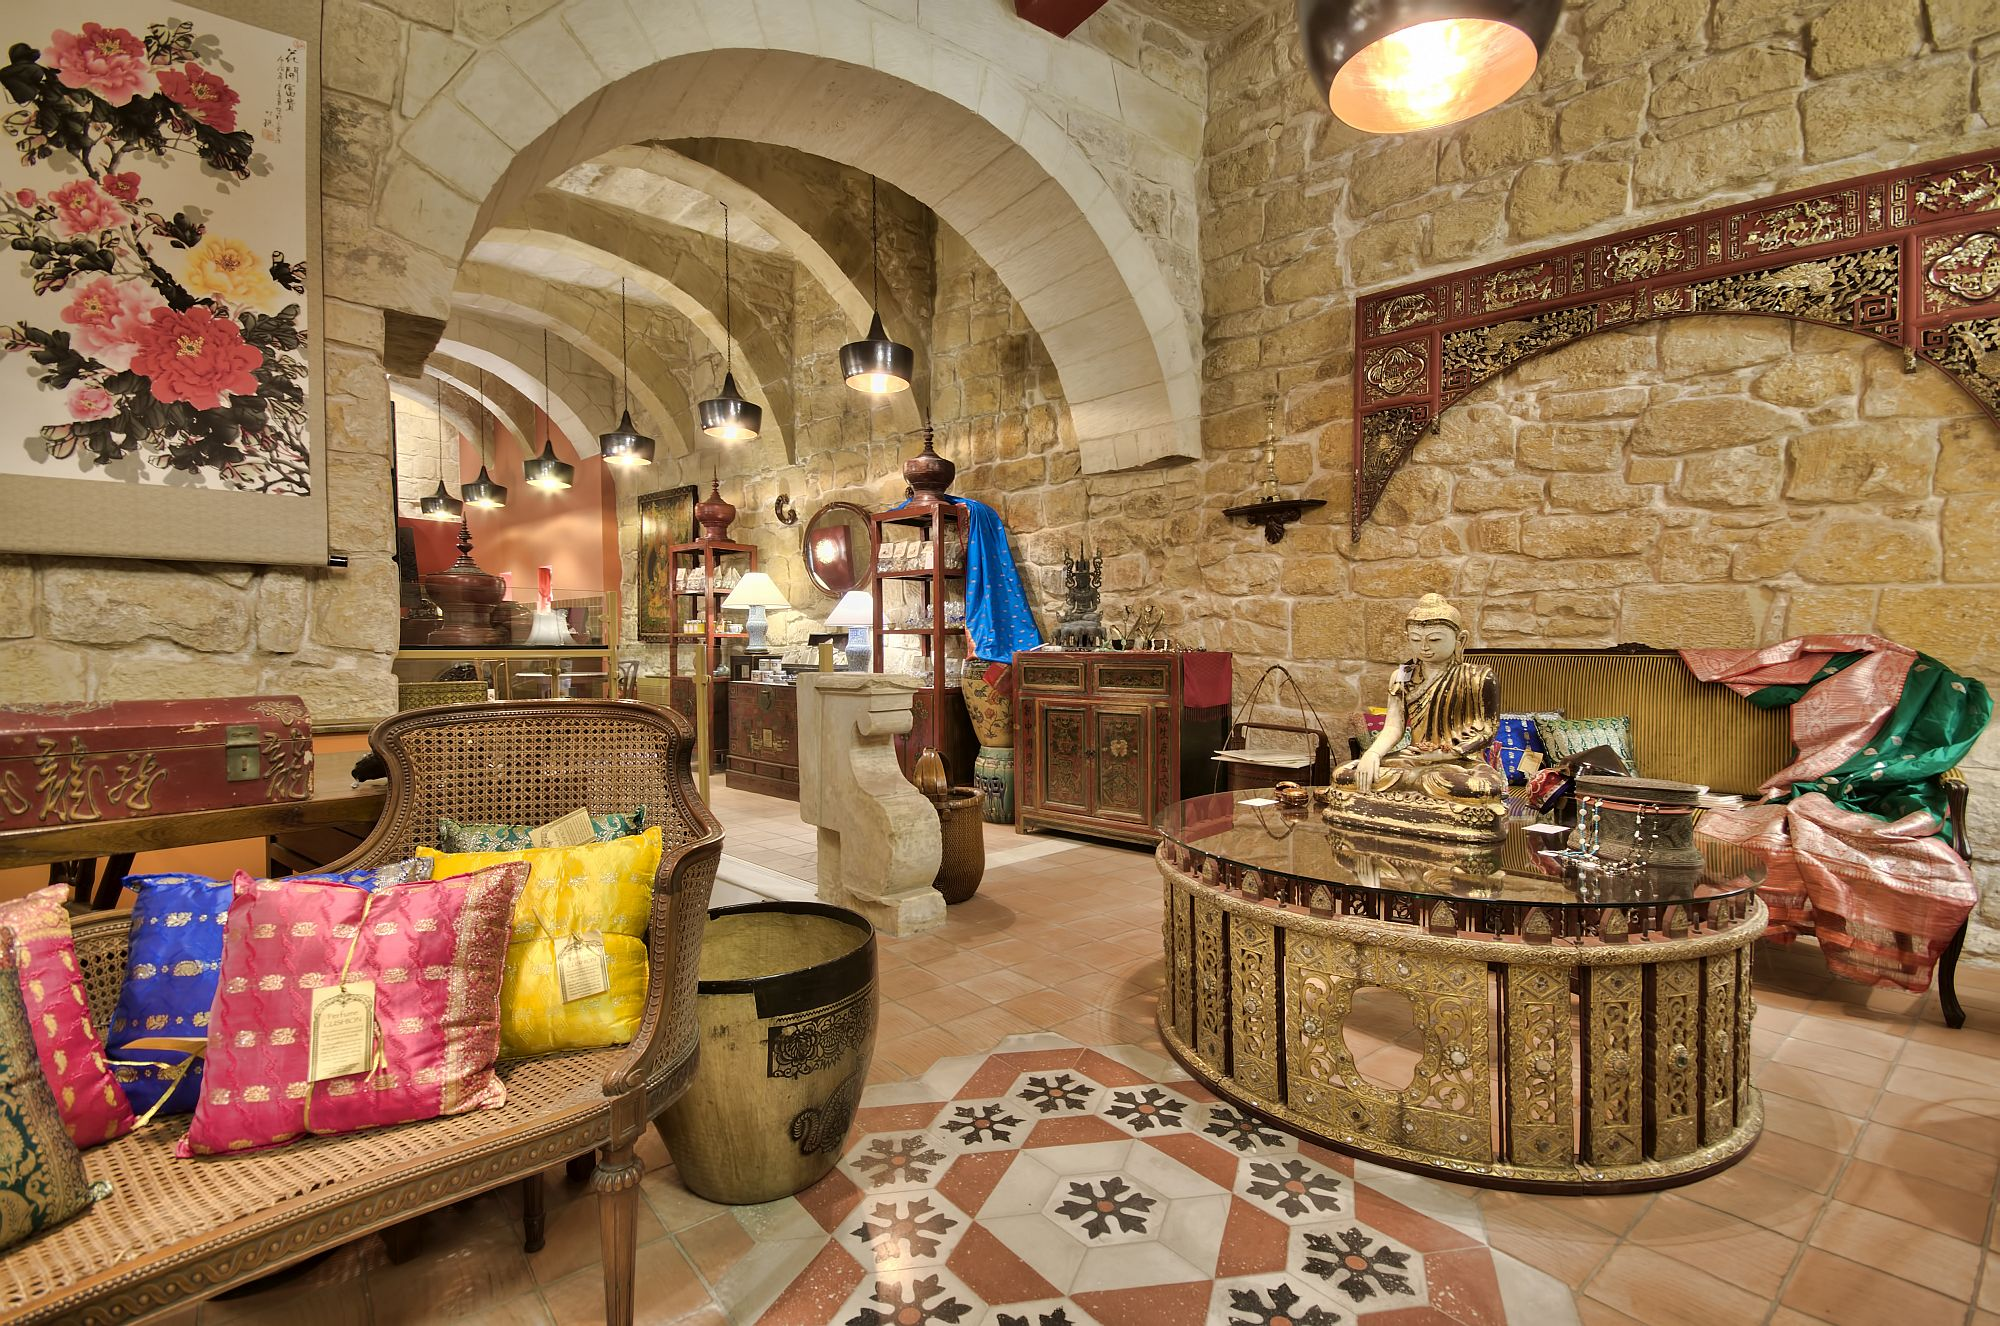 Reception at the Locanda La Gelsomina combines old world Maltese charm with art collection from far east